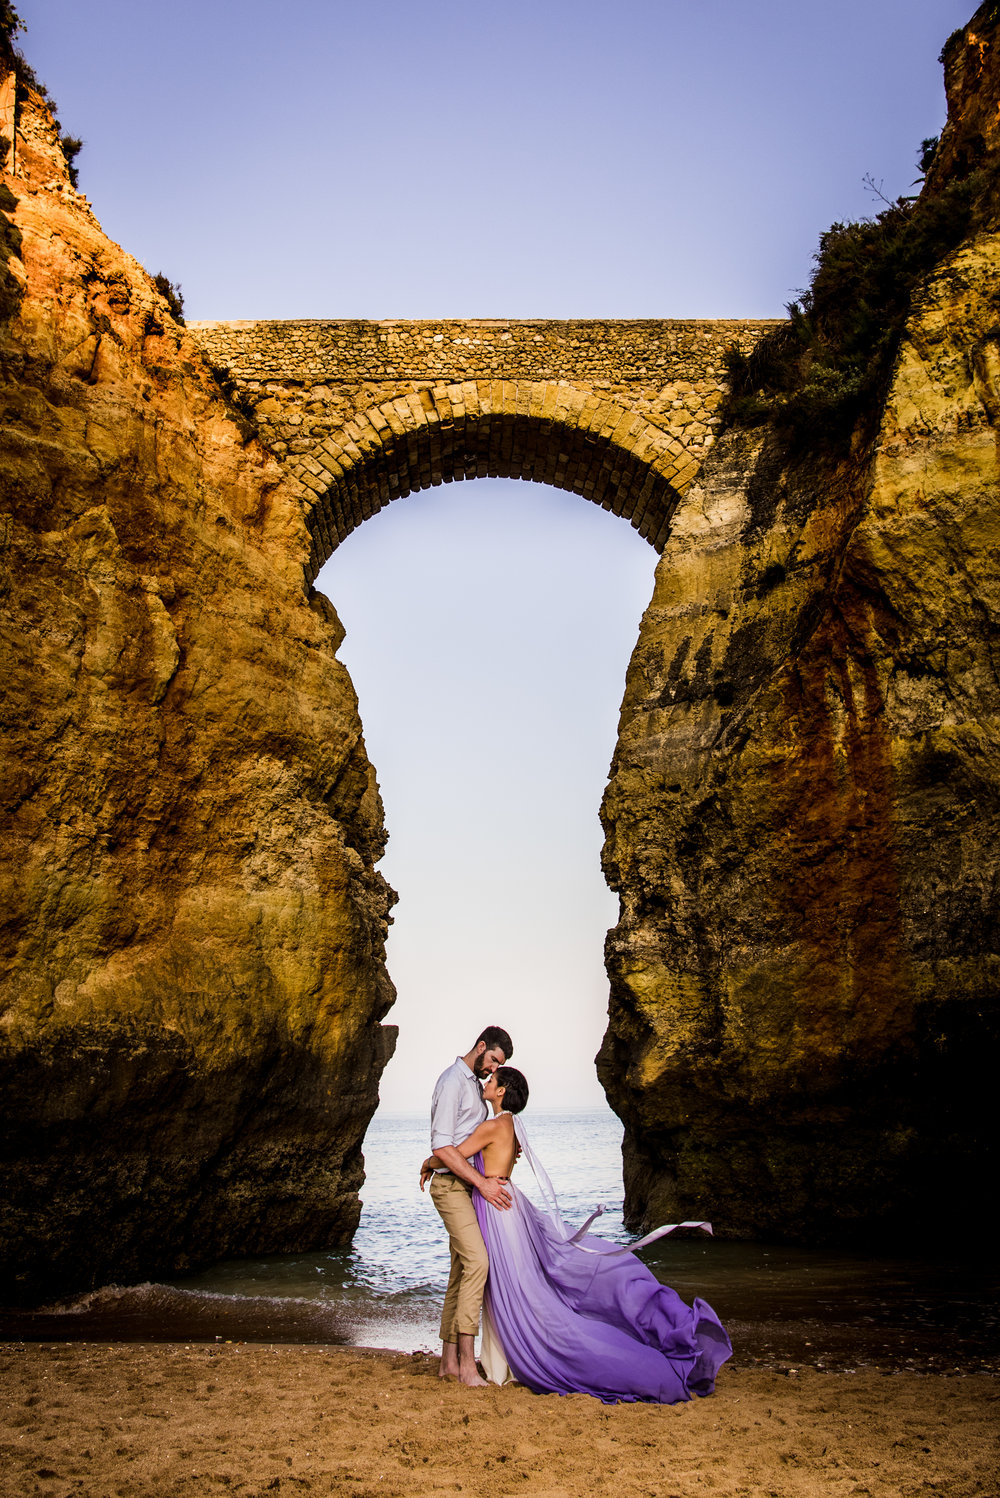 minty-fo-engagement-75.jpg